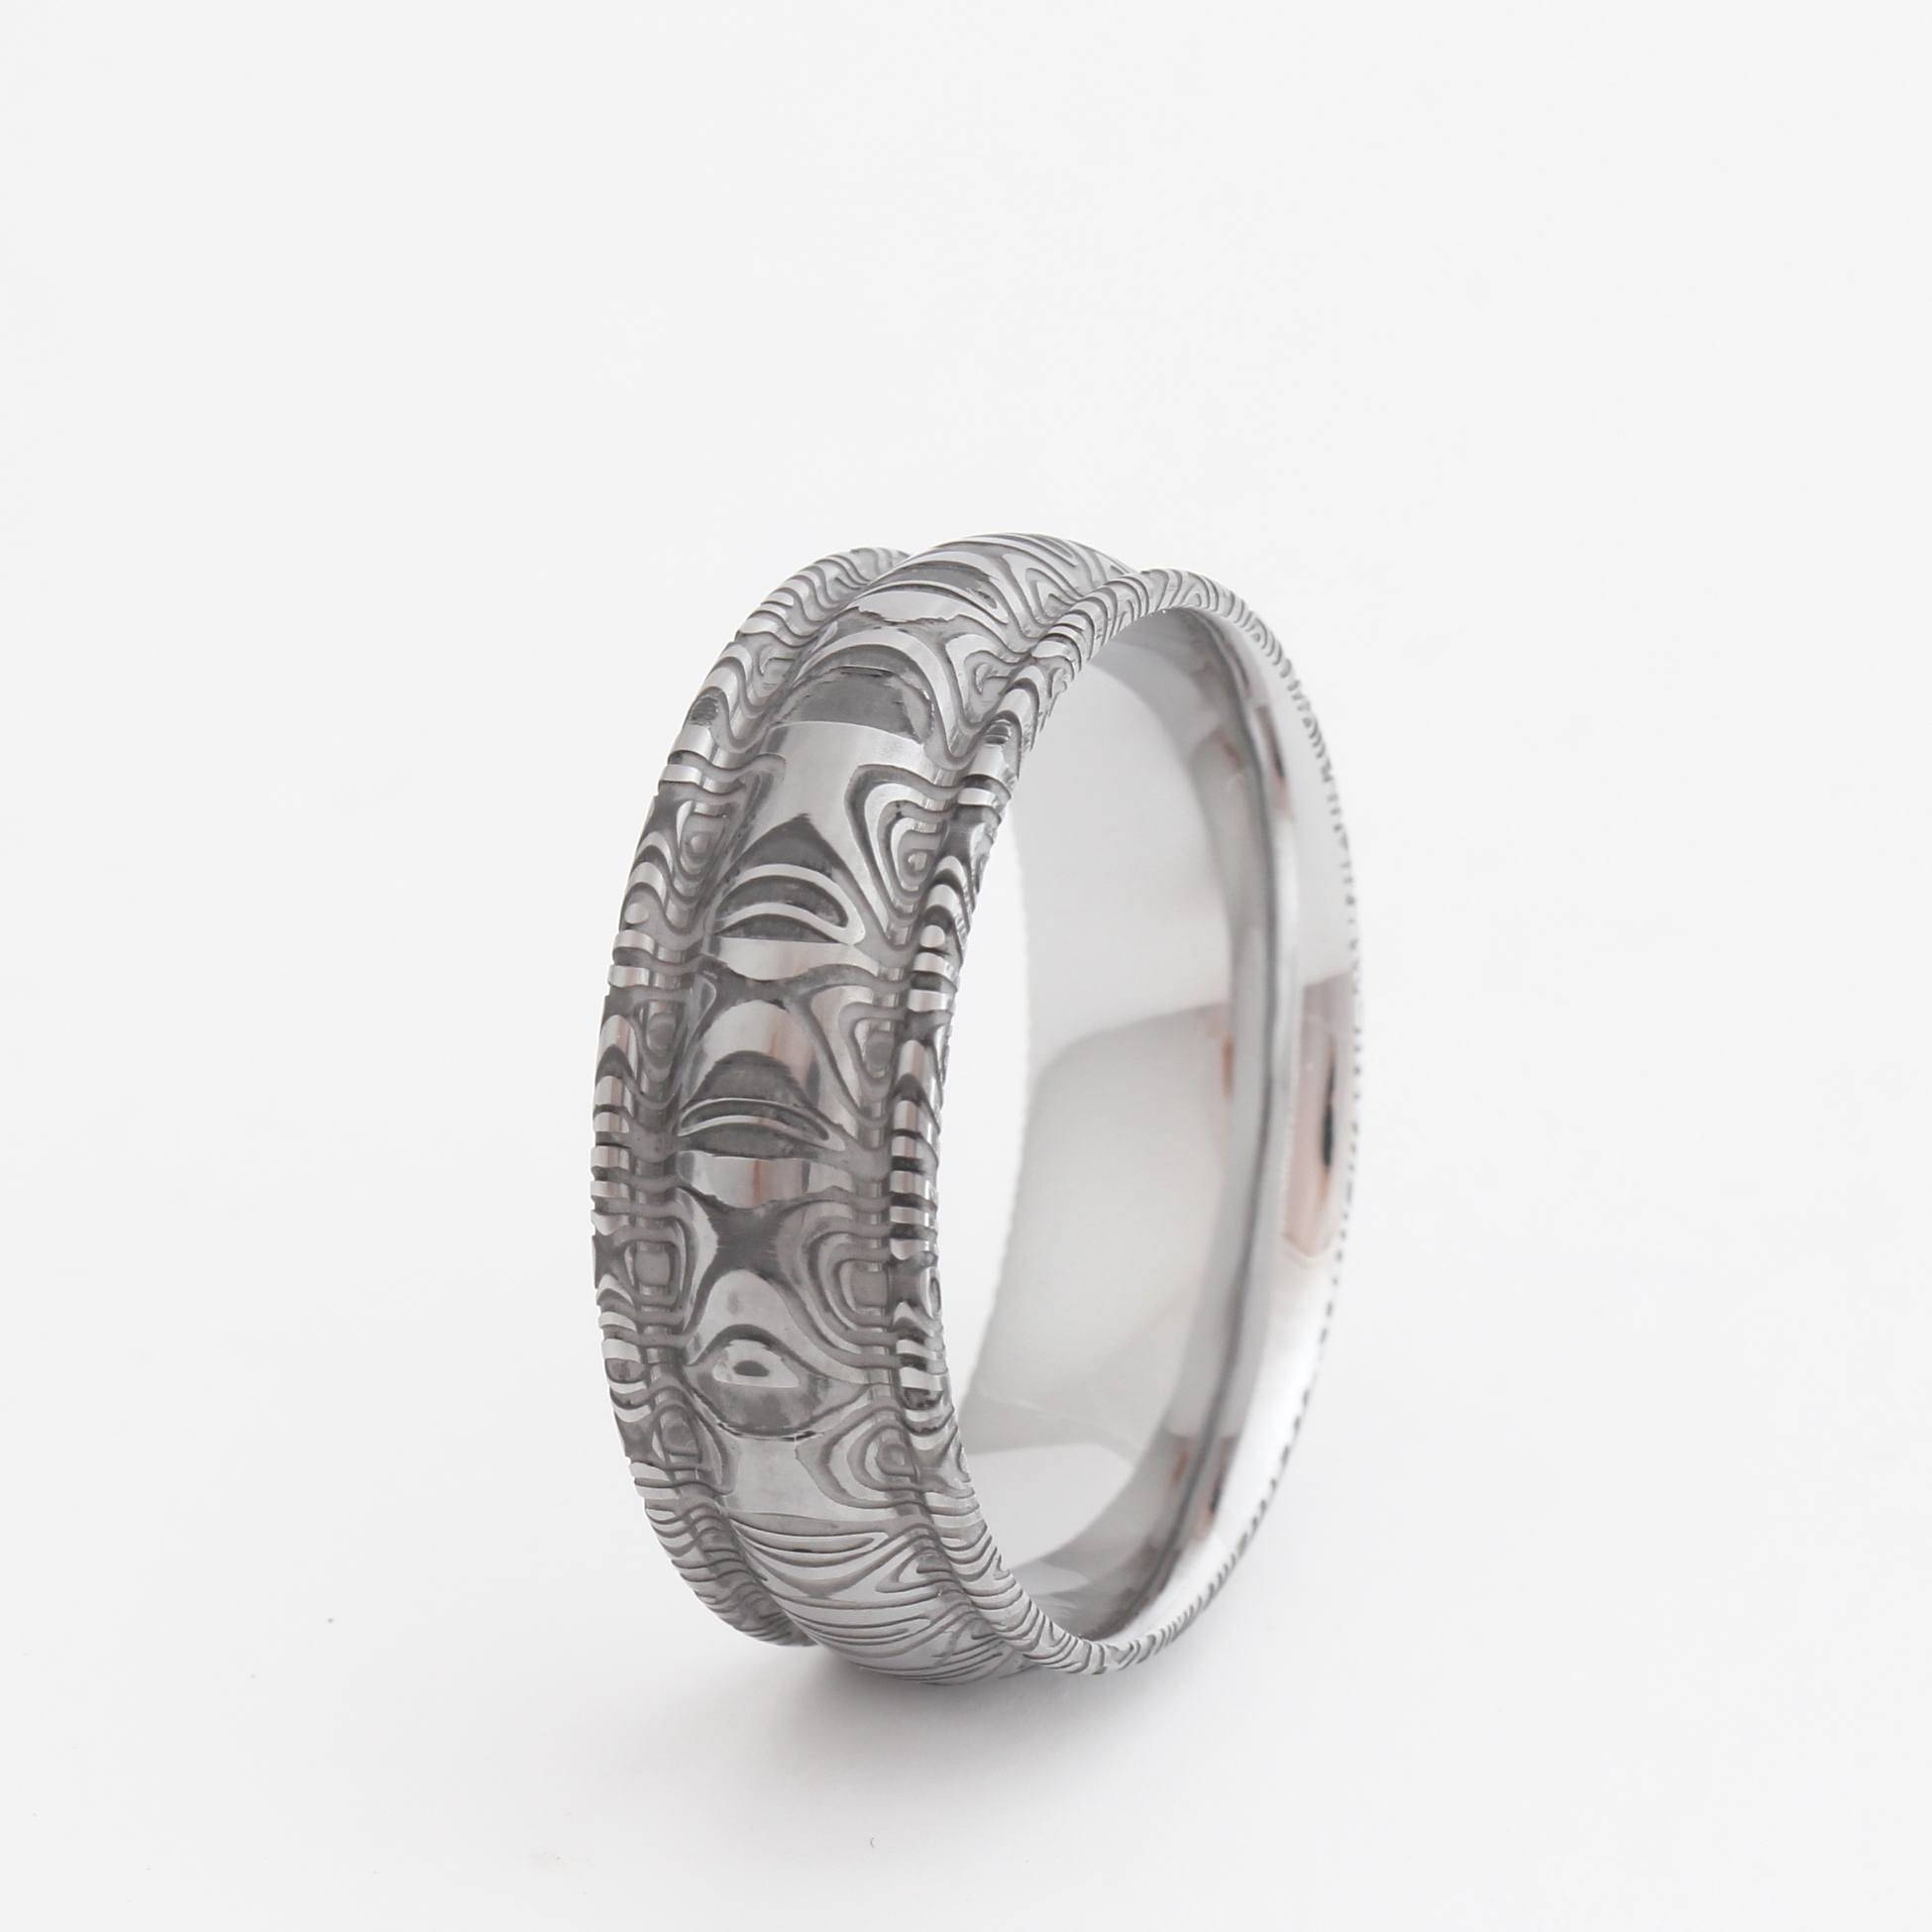 Damascus Wedding Bands With Stainless Steel Intended For Steel Wedding Bands (View 5 of 15)